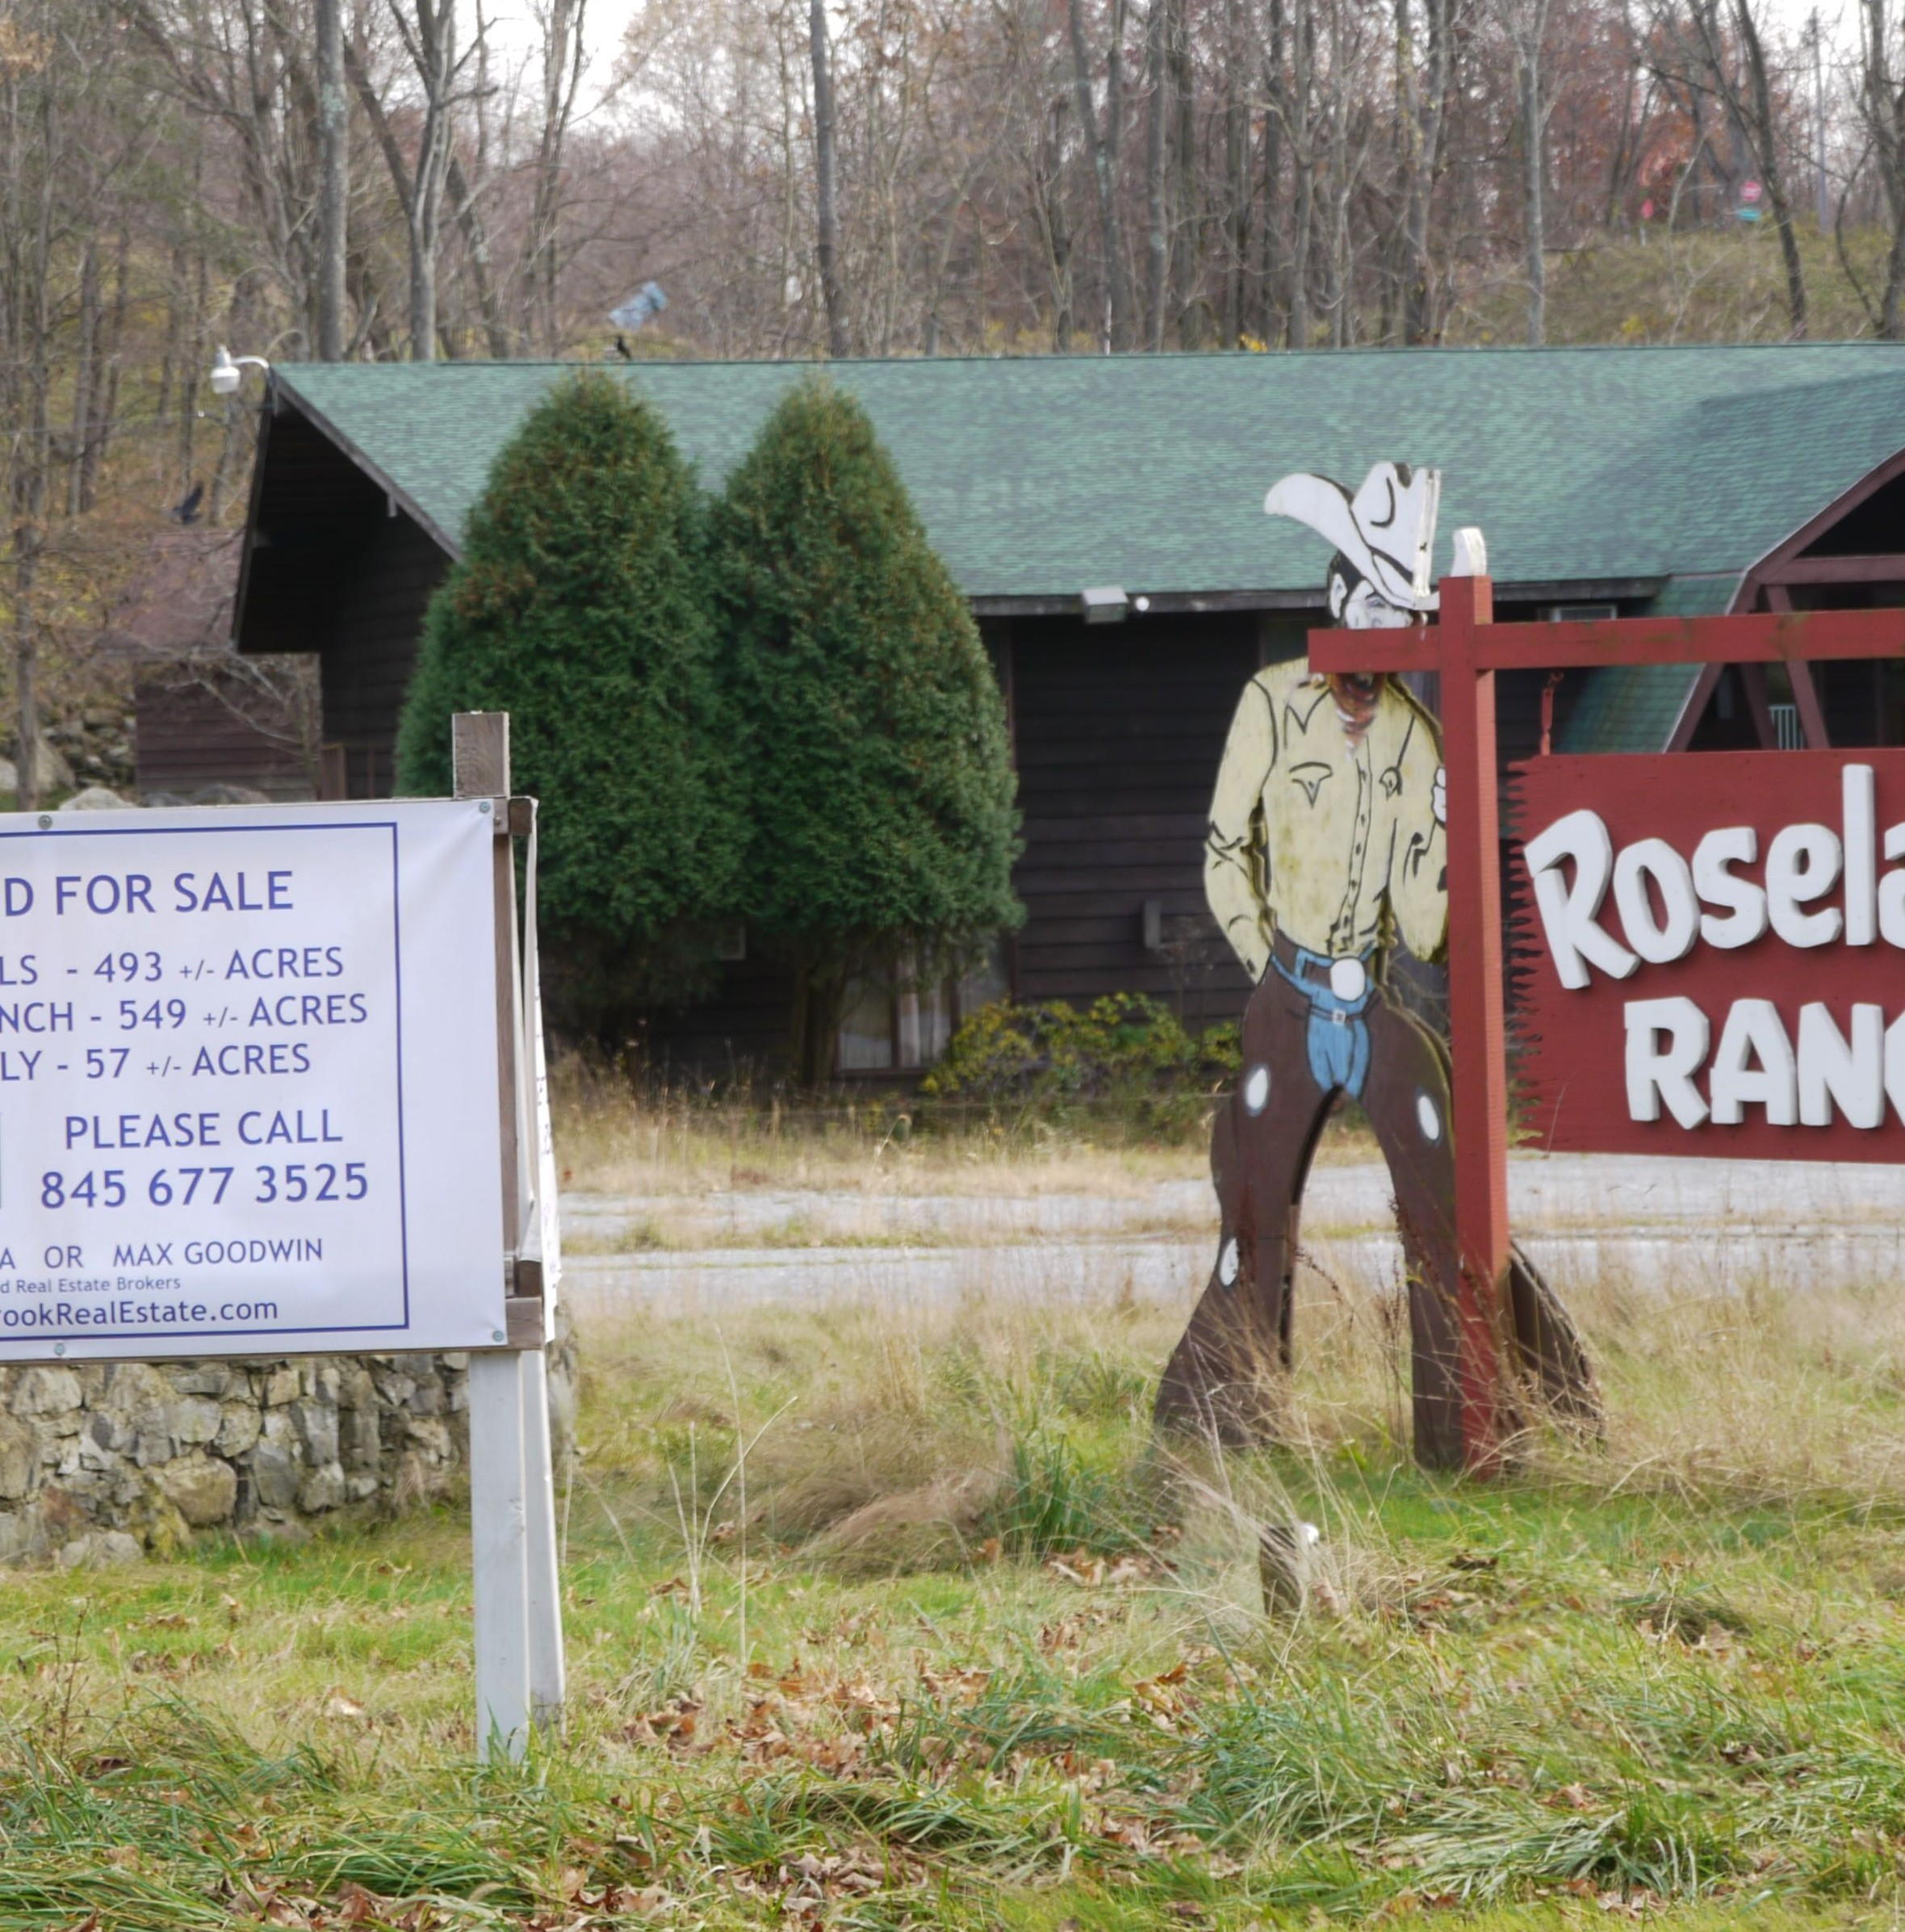 Roseland Ranch, Where All the Good Times Have Gone….